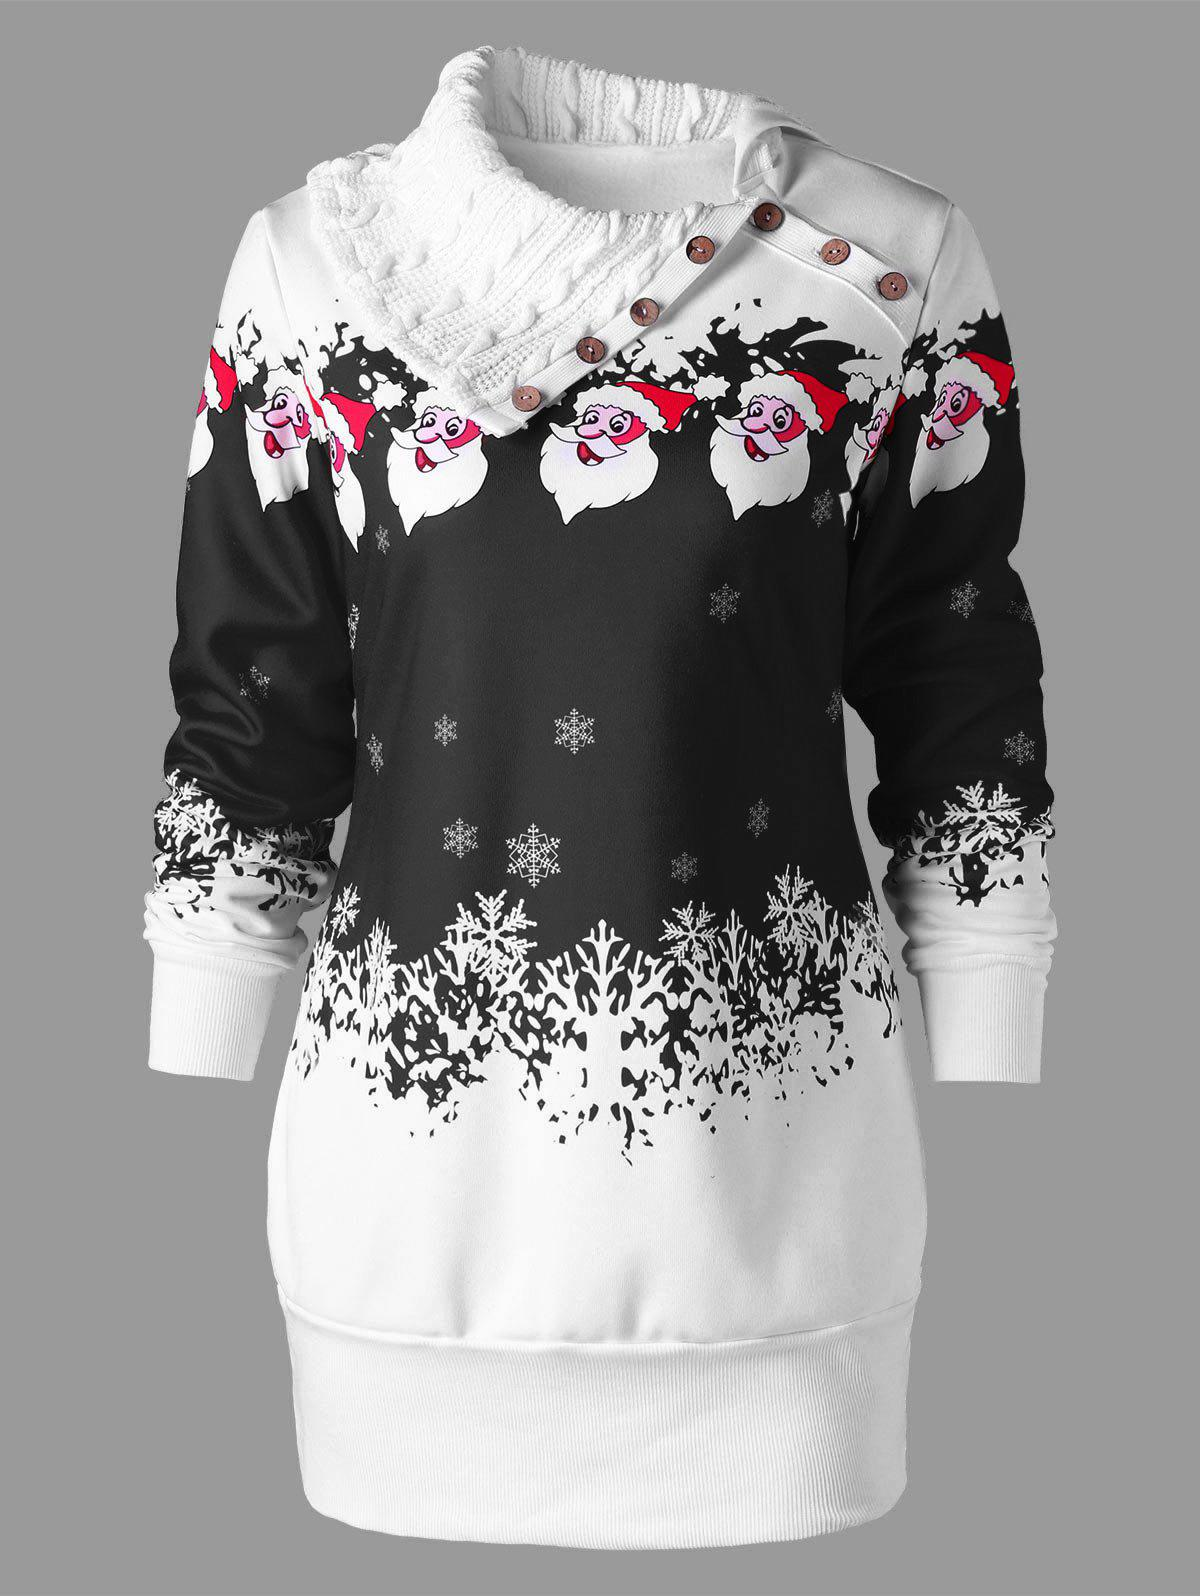 Santa Claus Print Plus Size Tunic Sweatshirt DressWOMEN<br><br>Size: 2XL; Color: BLACK; Style: Cute; Material: Polyester; Silhouette: Bodycon; Dresses Length: Mini; Neckline: Flat Collar; Sleeve Length: Long Sleeves; Waist: Natural; Embellishment: Button; Pattern Type: Character,Print; With Belt: No; Season: Fall,Spring,Winter; Weight: 0.6200kg; Package Contents: 1 x Dress;